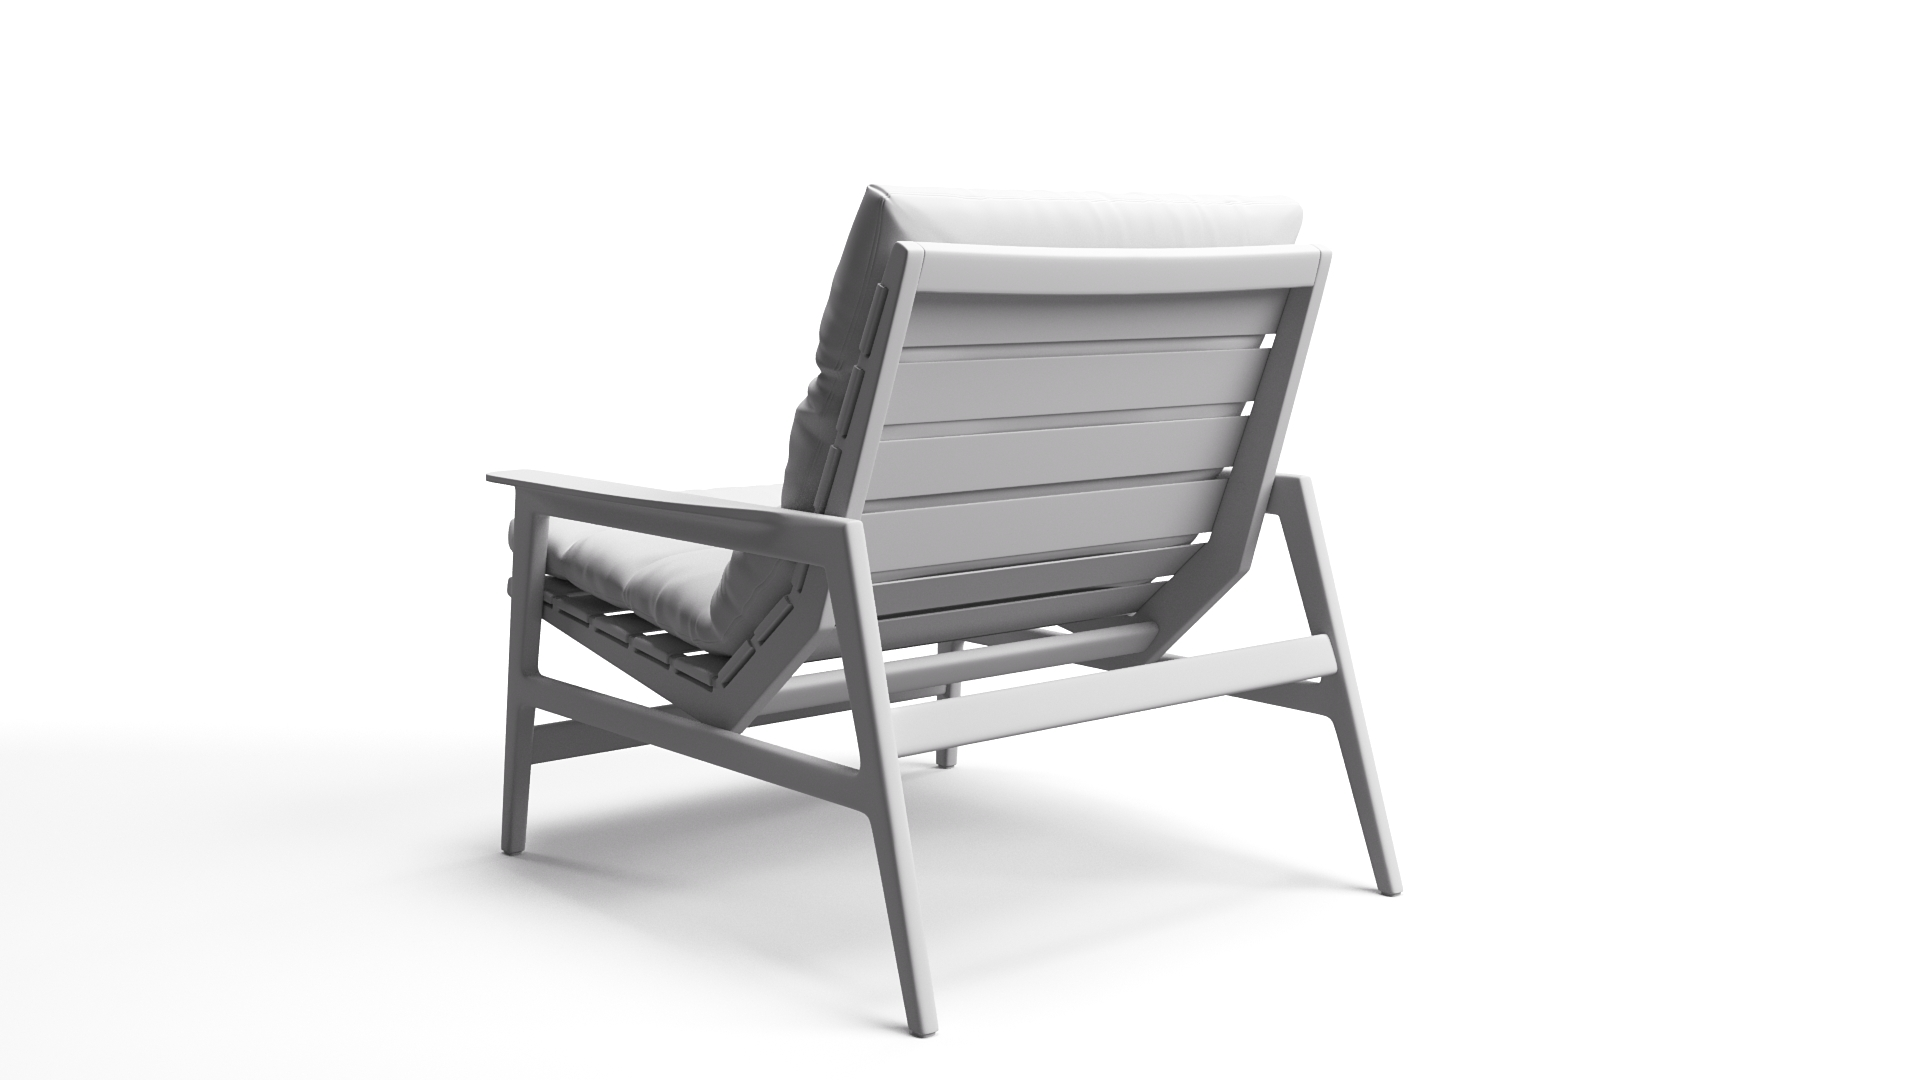 Geometry of a Chair 3D Model